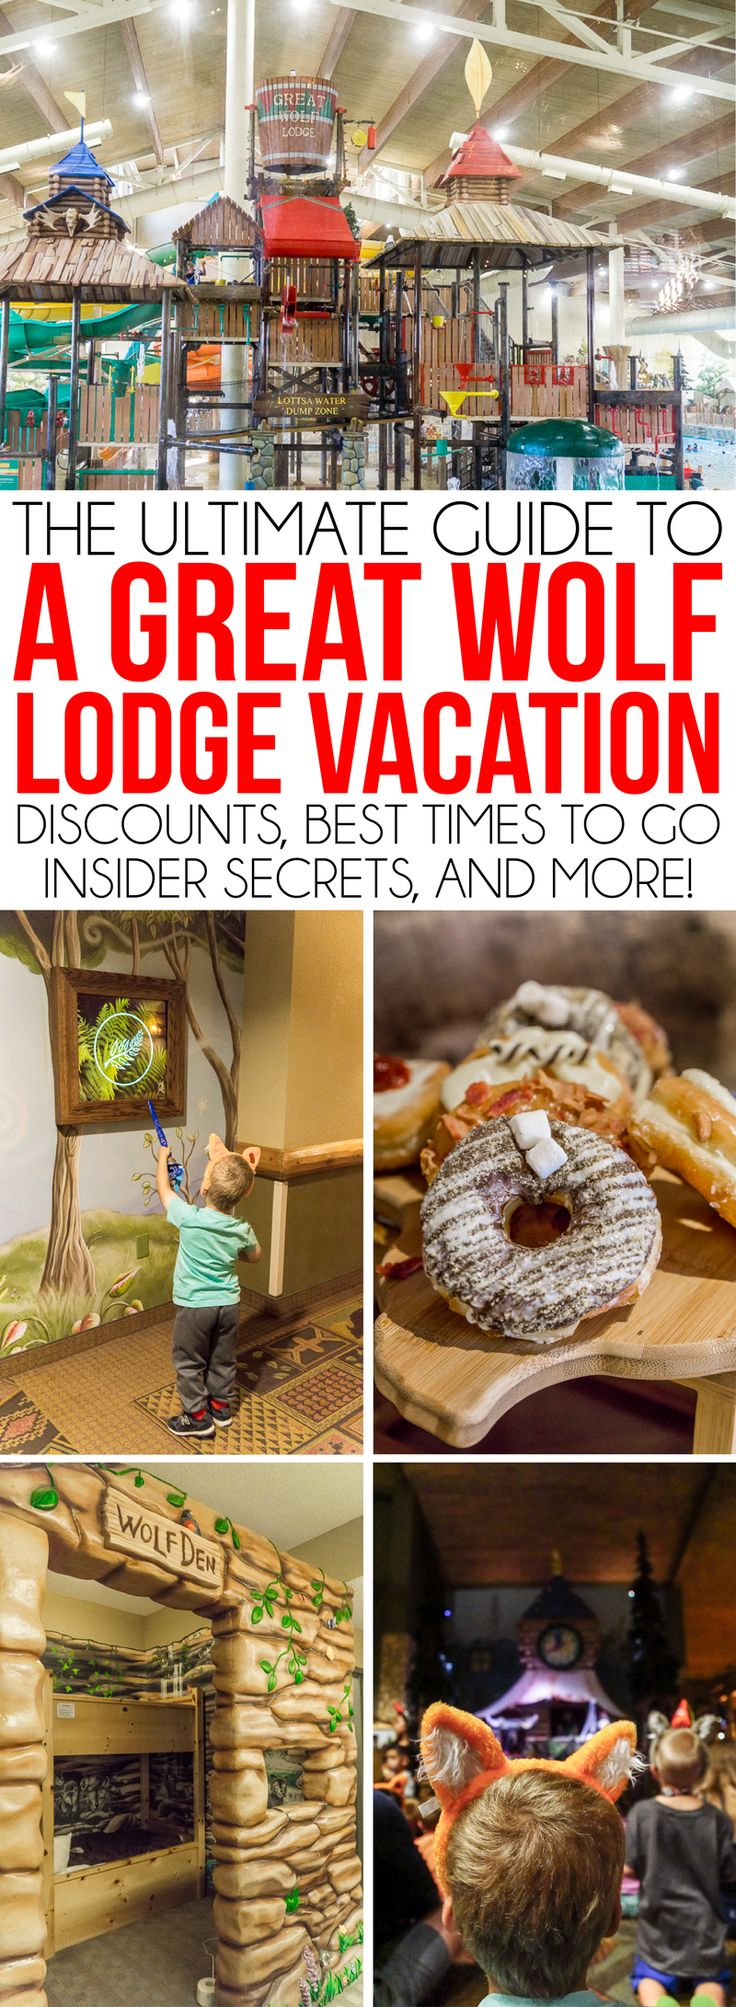 Tips and secrets to help families (even Mom!) have the most fun at Great Wolf Lodge Grapevine in Dallas! How to pick the best rooms, hacks for saving money, what food to eat (and what to skip), MagiQuest tips, and even details on Snowland and Halloween celebrations! Definitely need to read these tips before going!